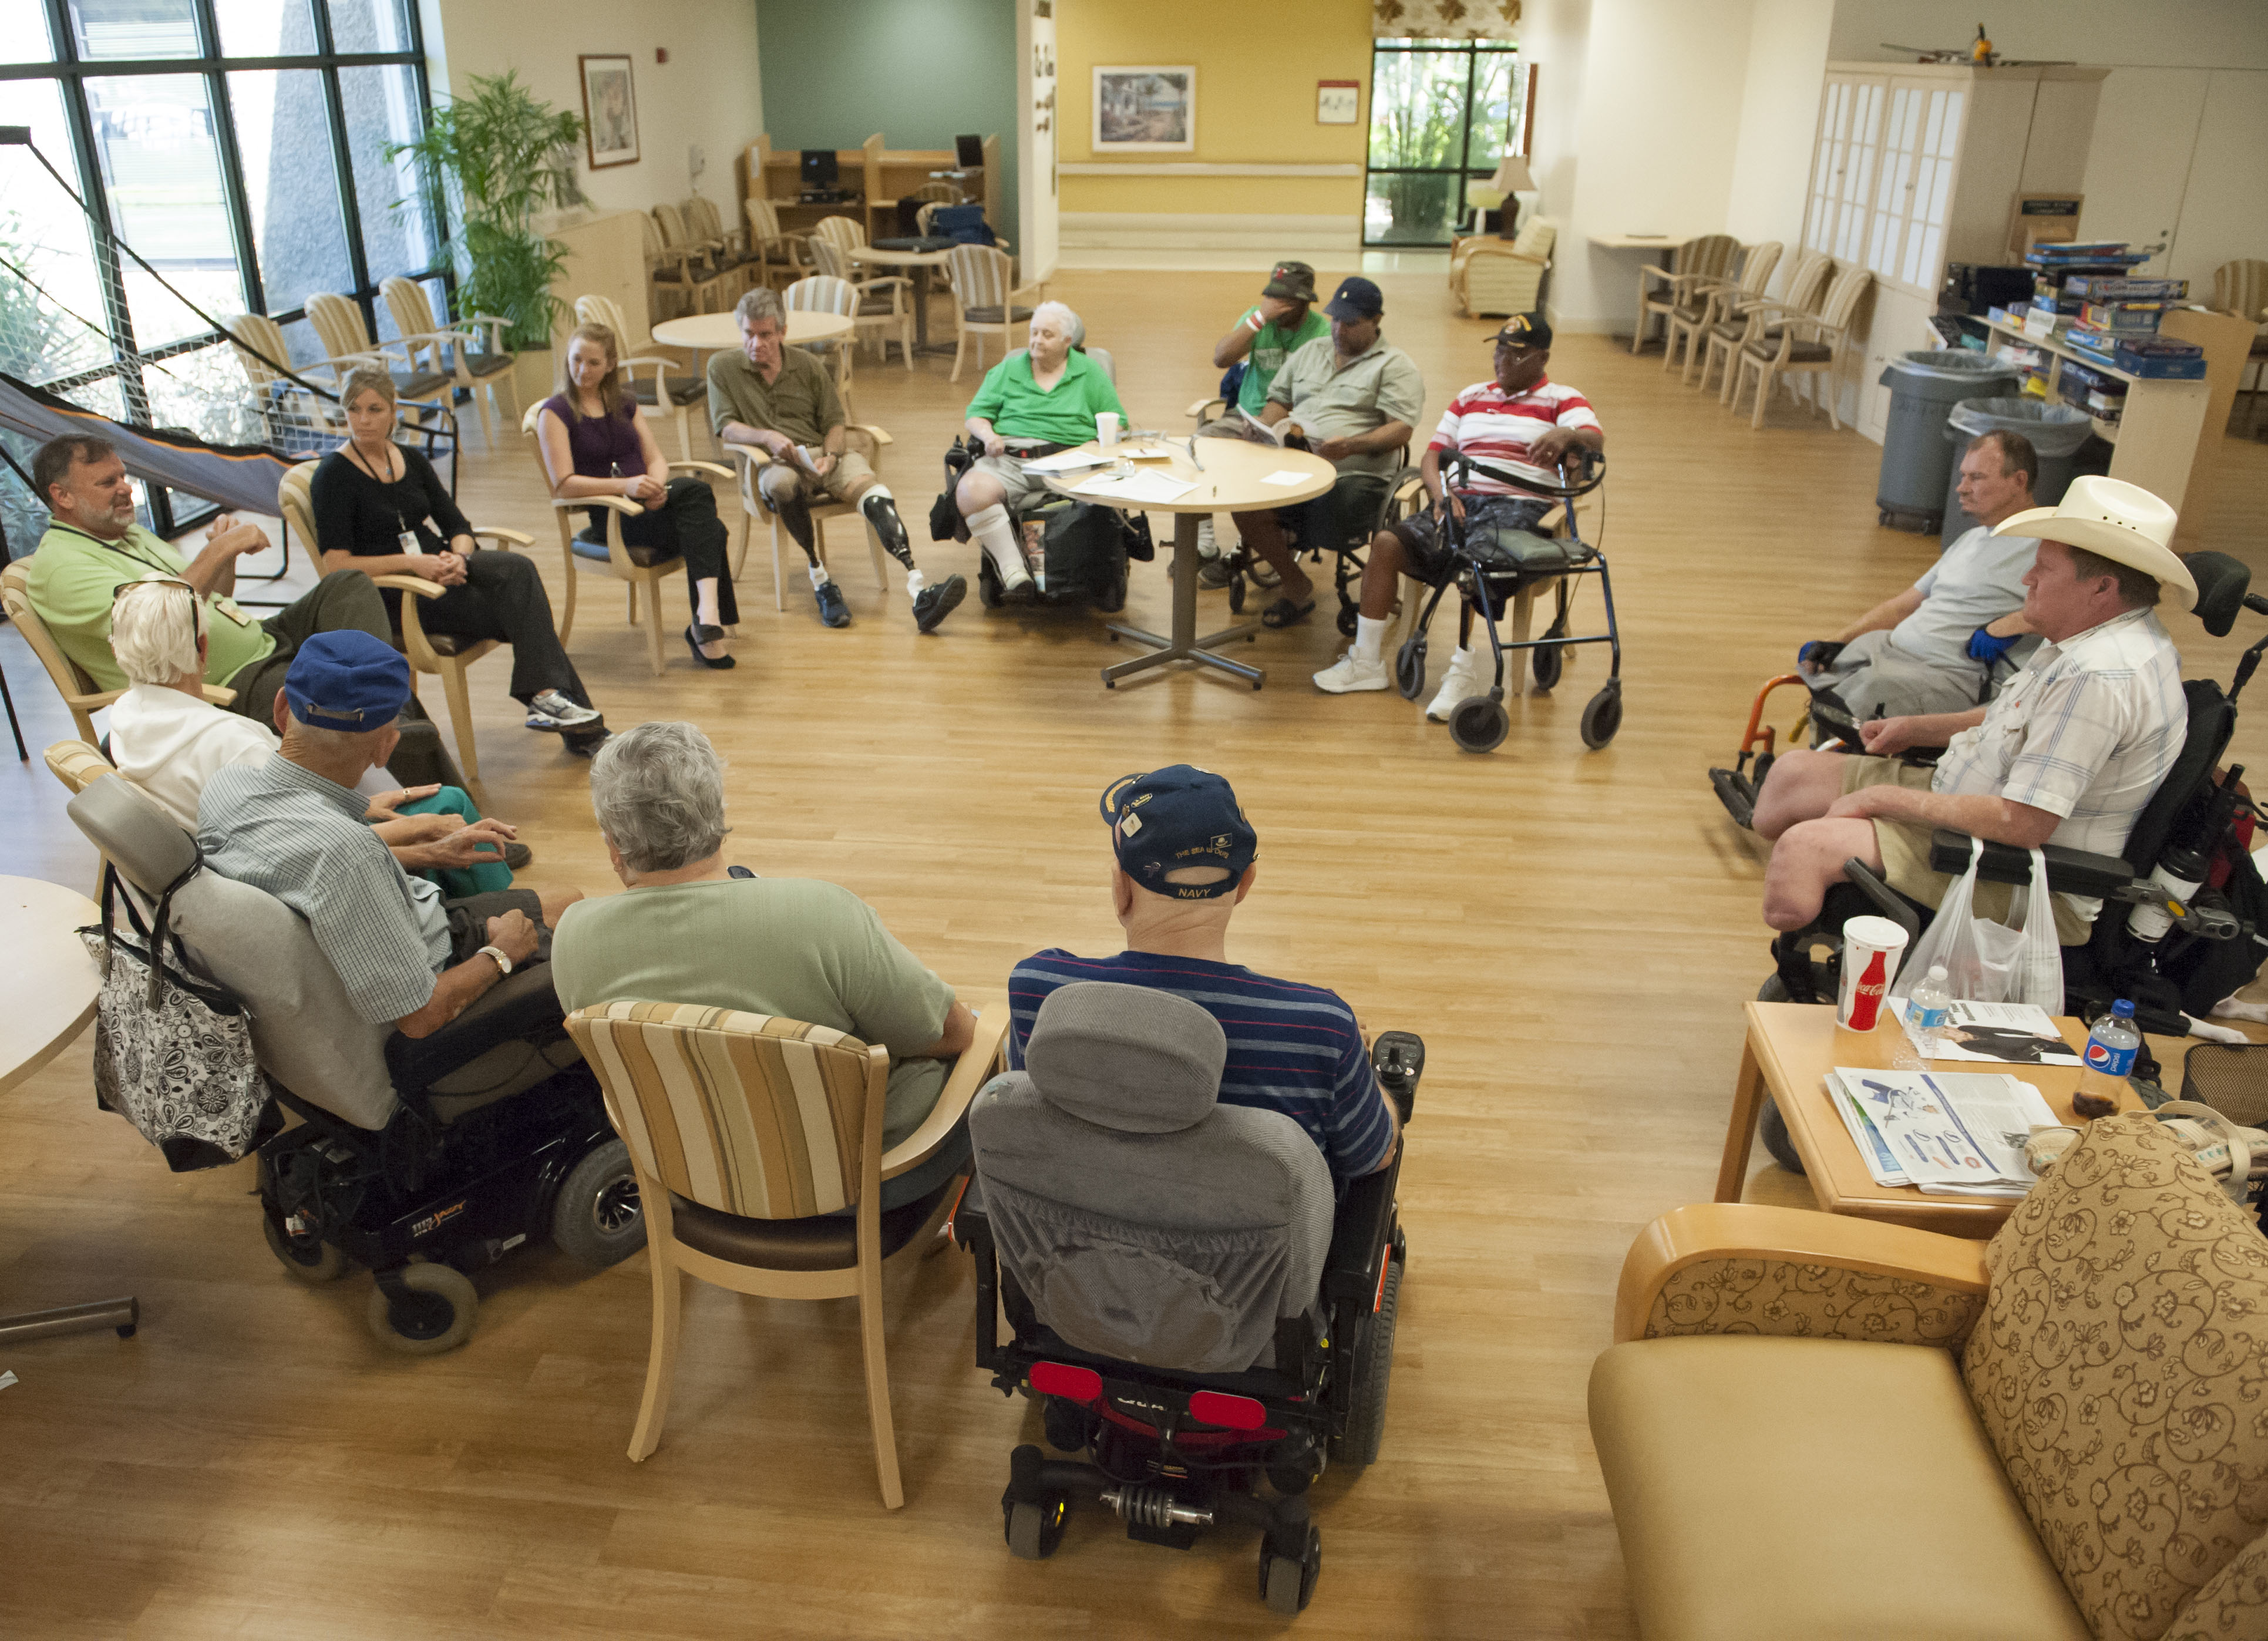 veteran amputee support group brings hope enhances life